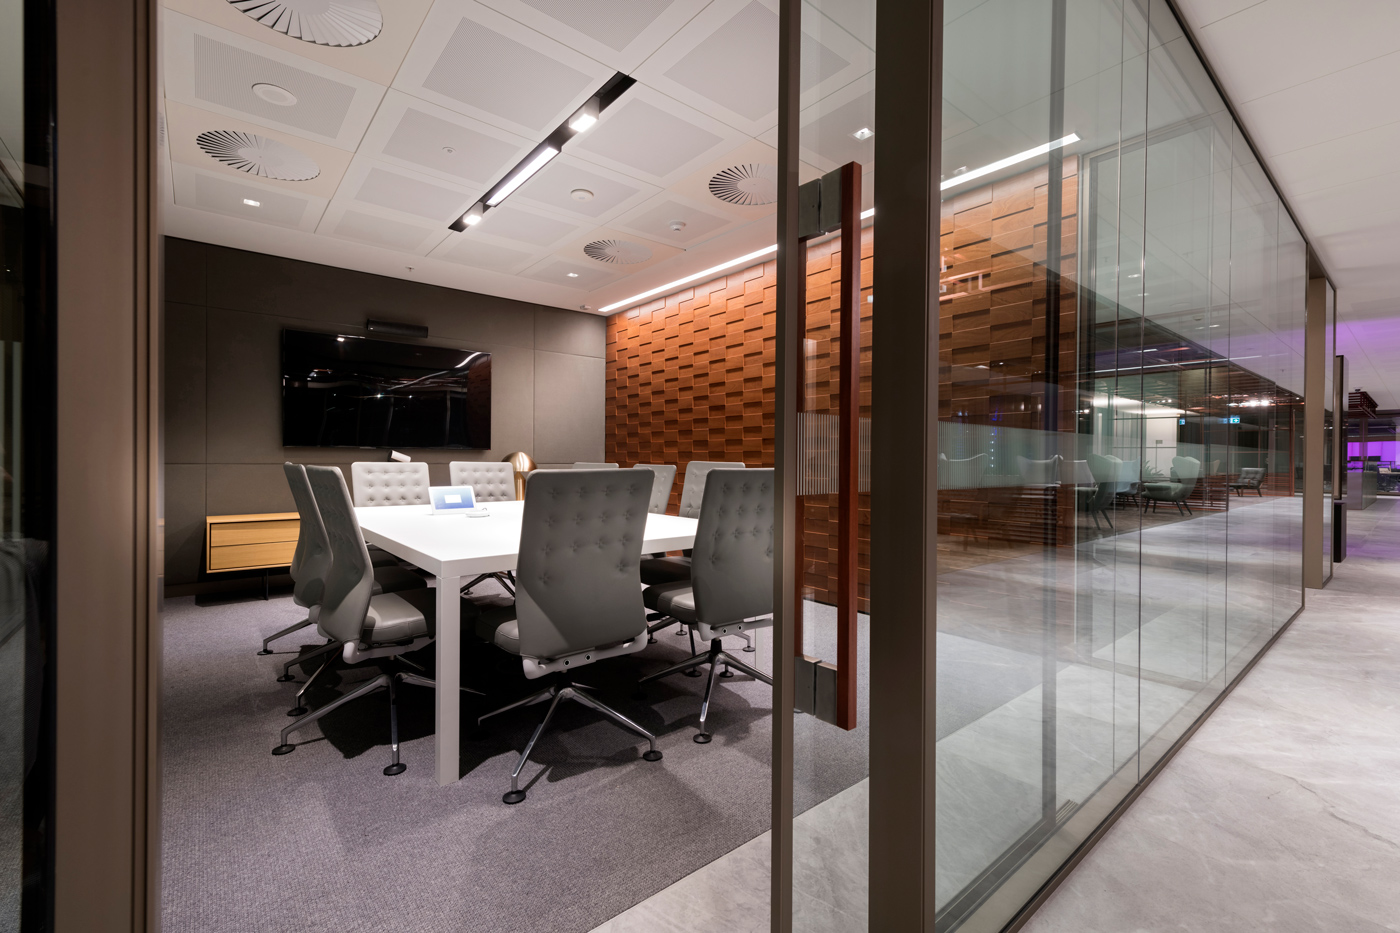 jeb_group-partitions-x-series-westpac-office-au-03.jpg